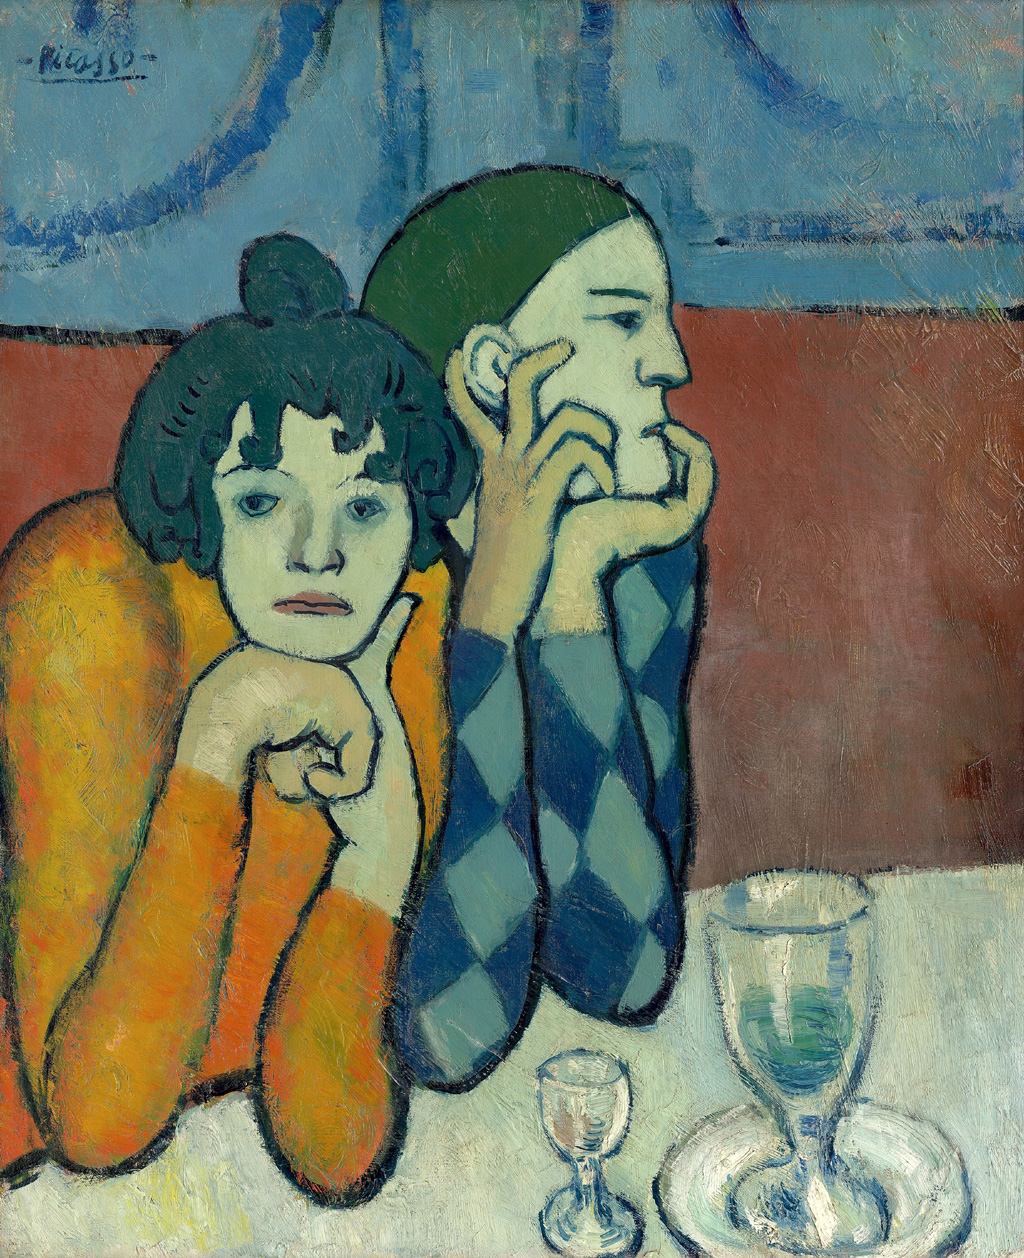 2013-04-11-picasso_two_saltimbanques_postcard_1.jpg